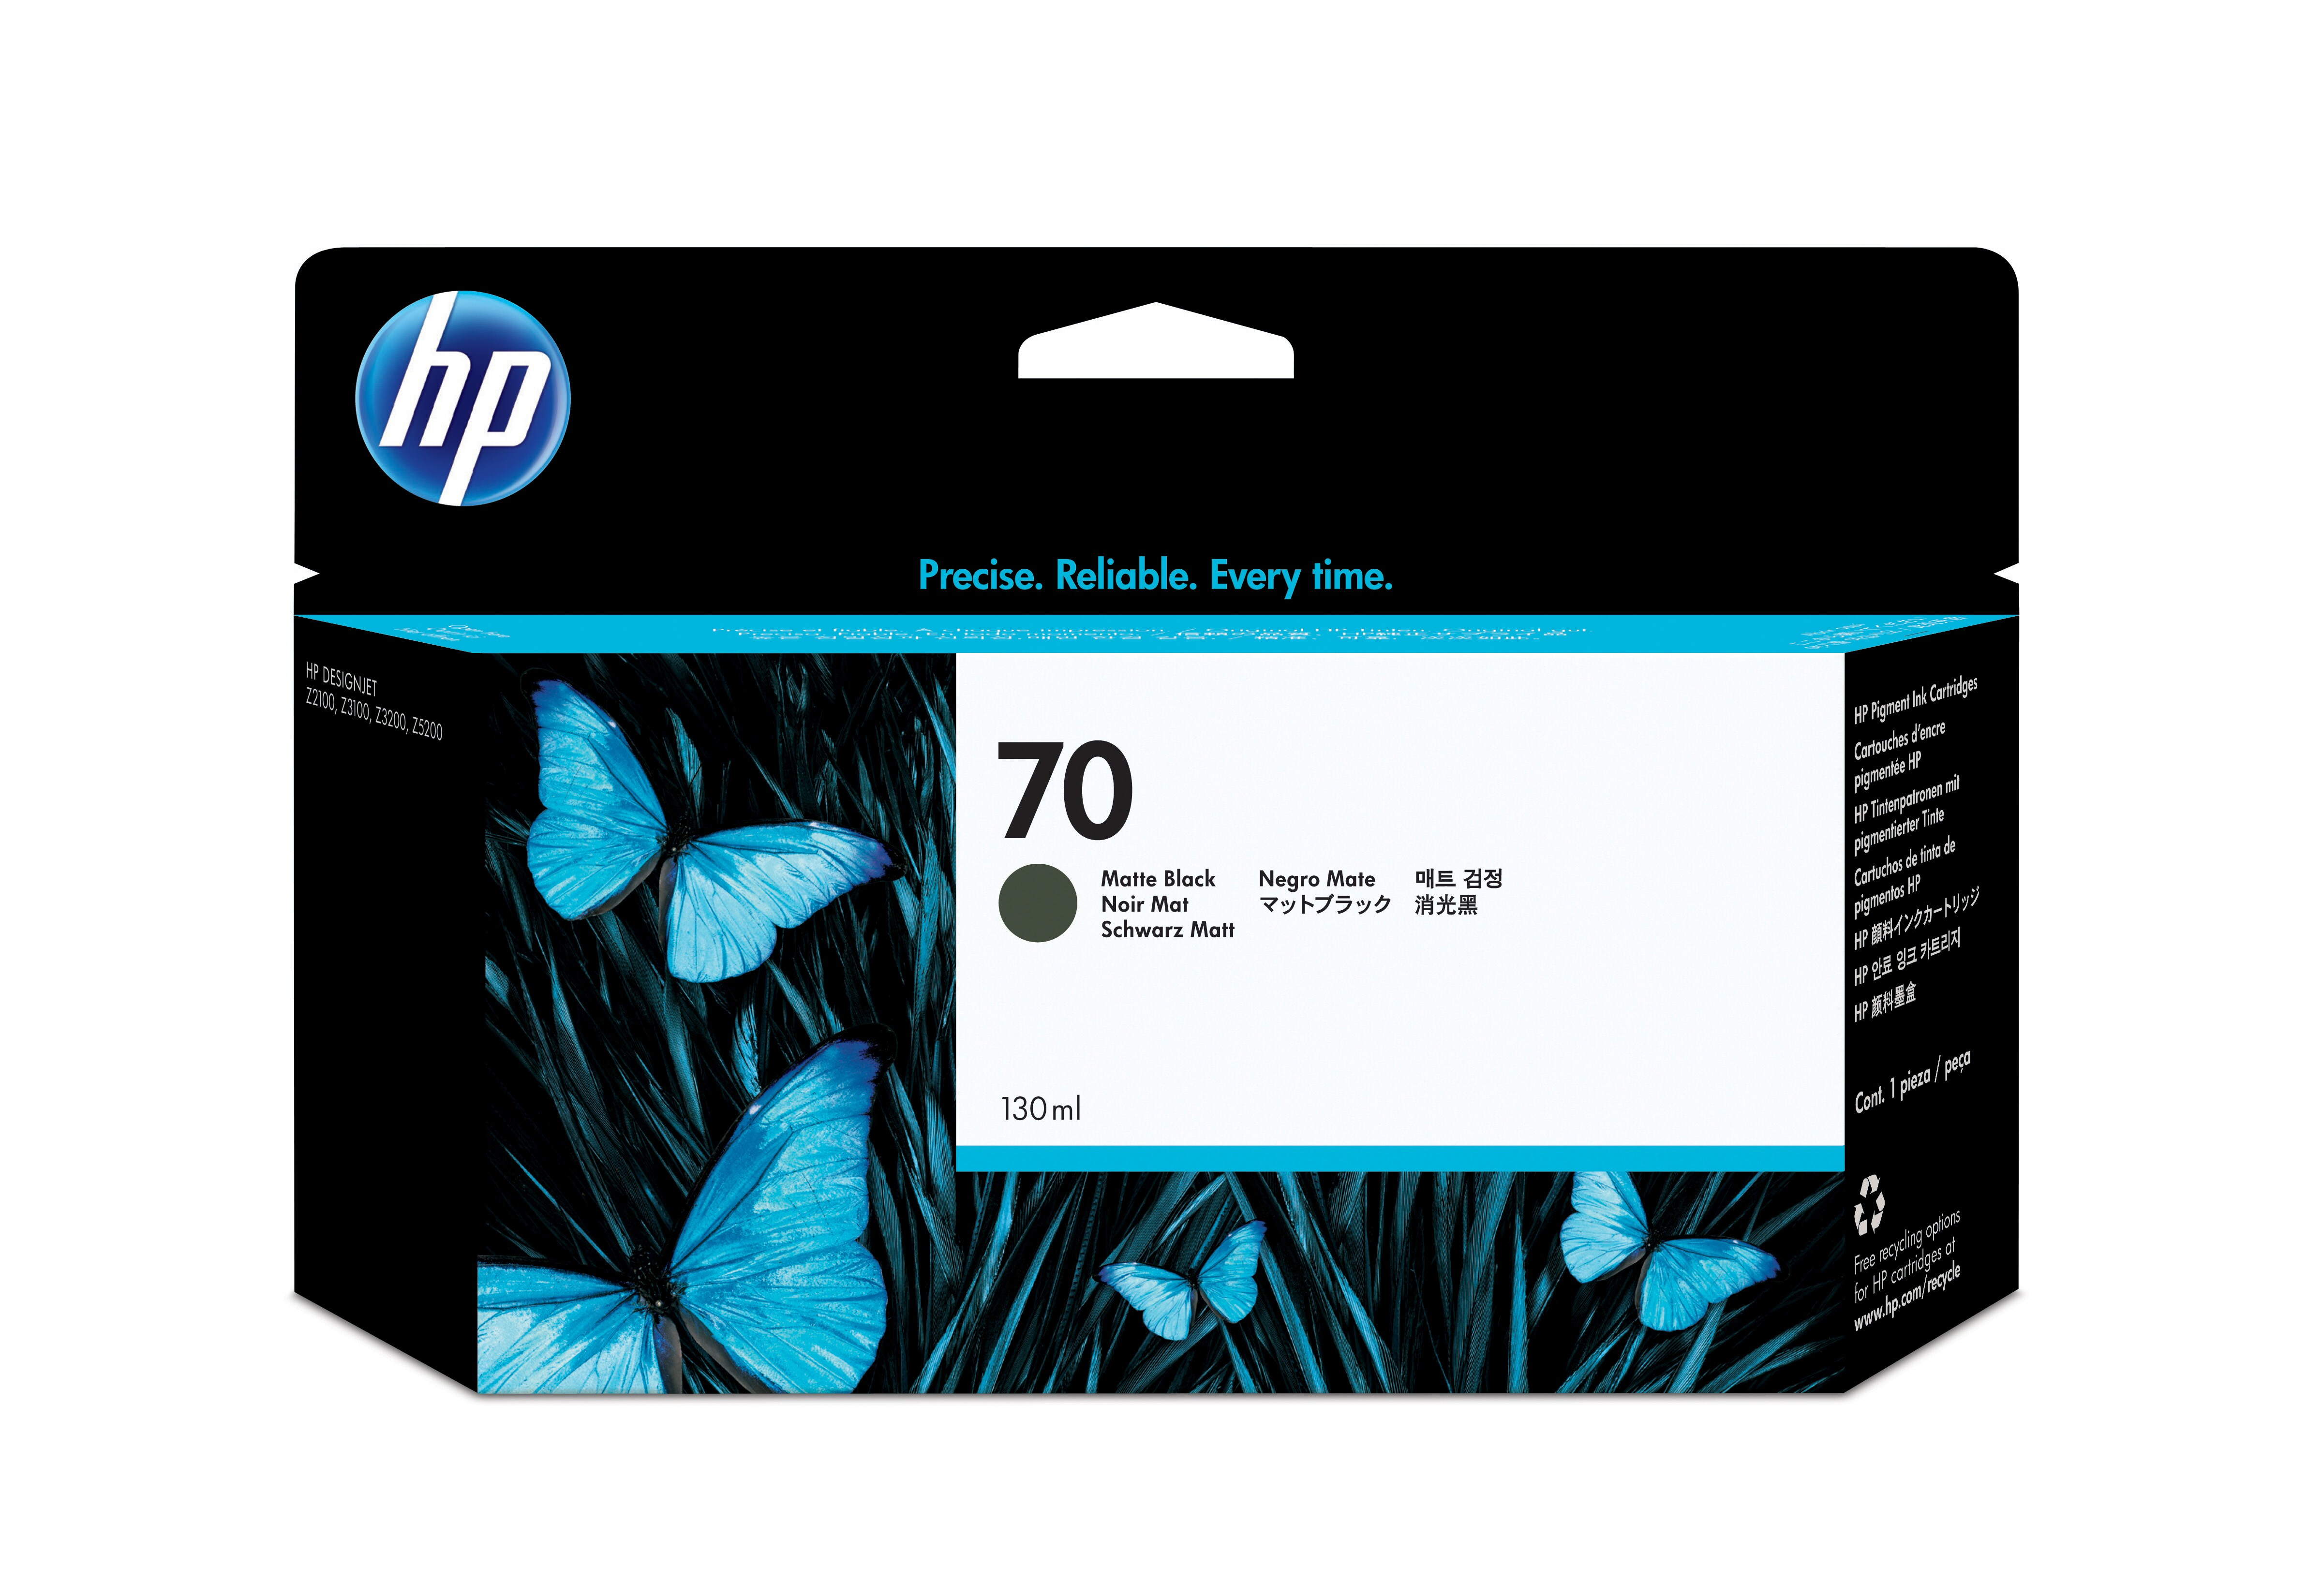 Hpc9448a       Hp 70 Matte Black Inkjet       Hp No.70                                                     - UF01